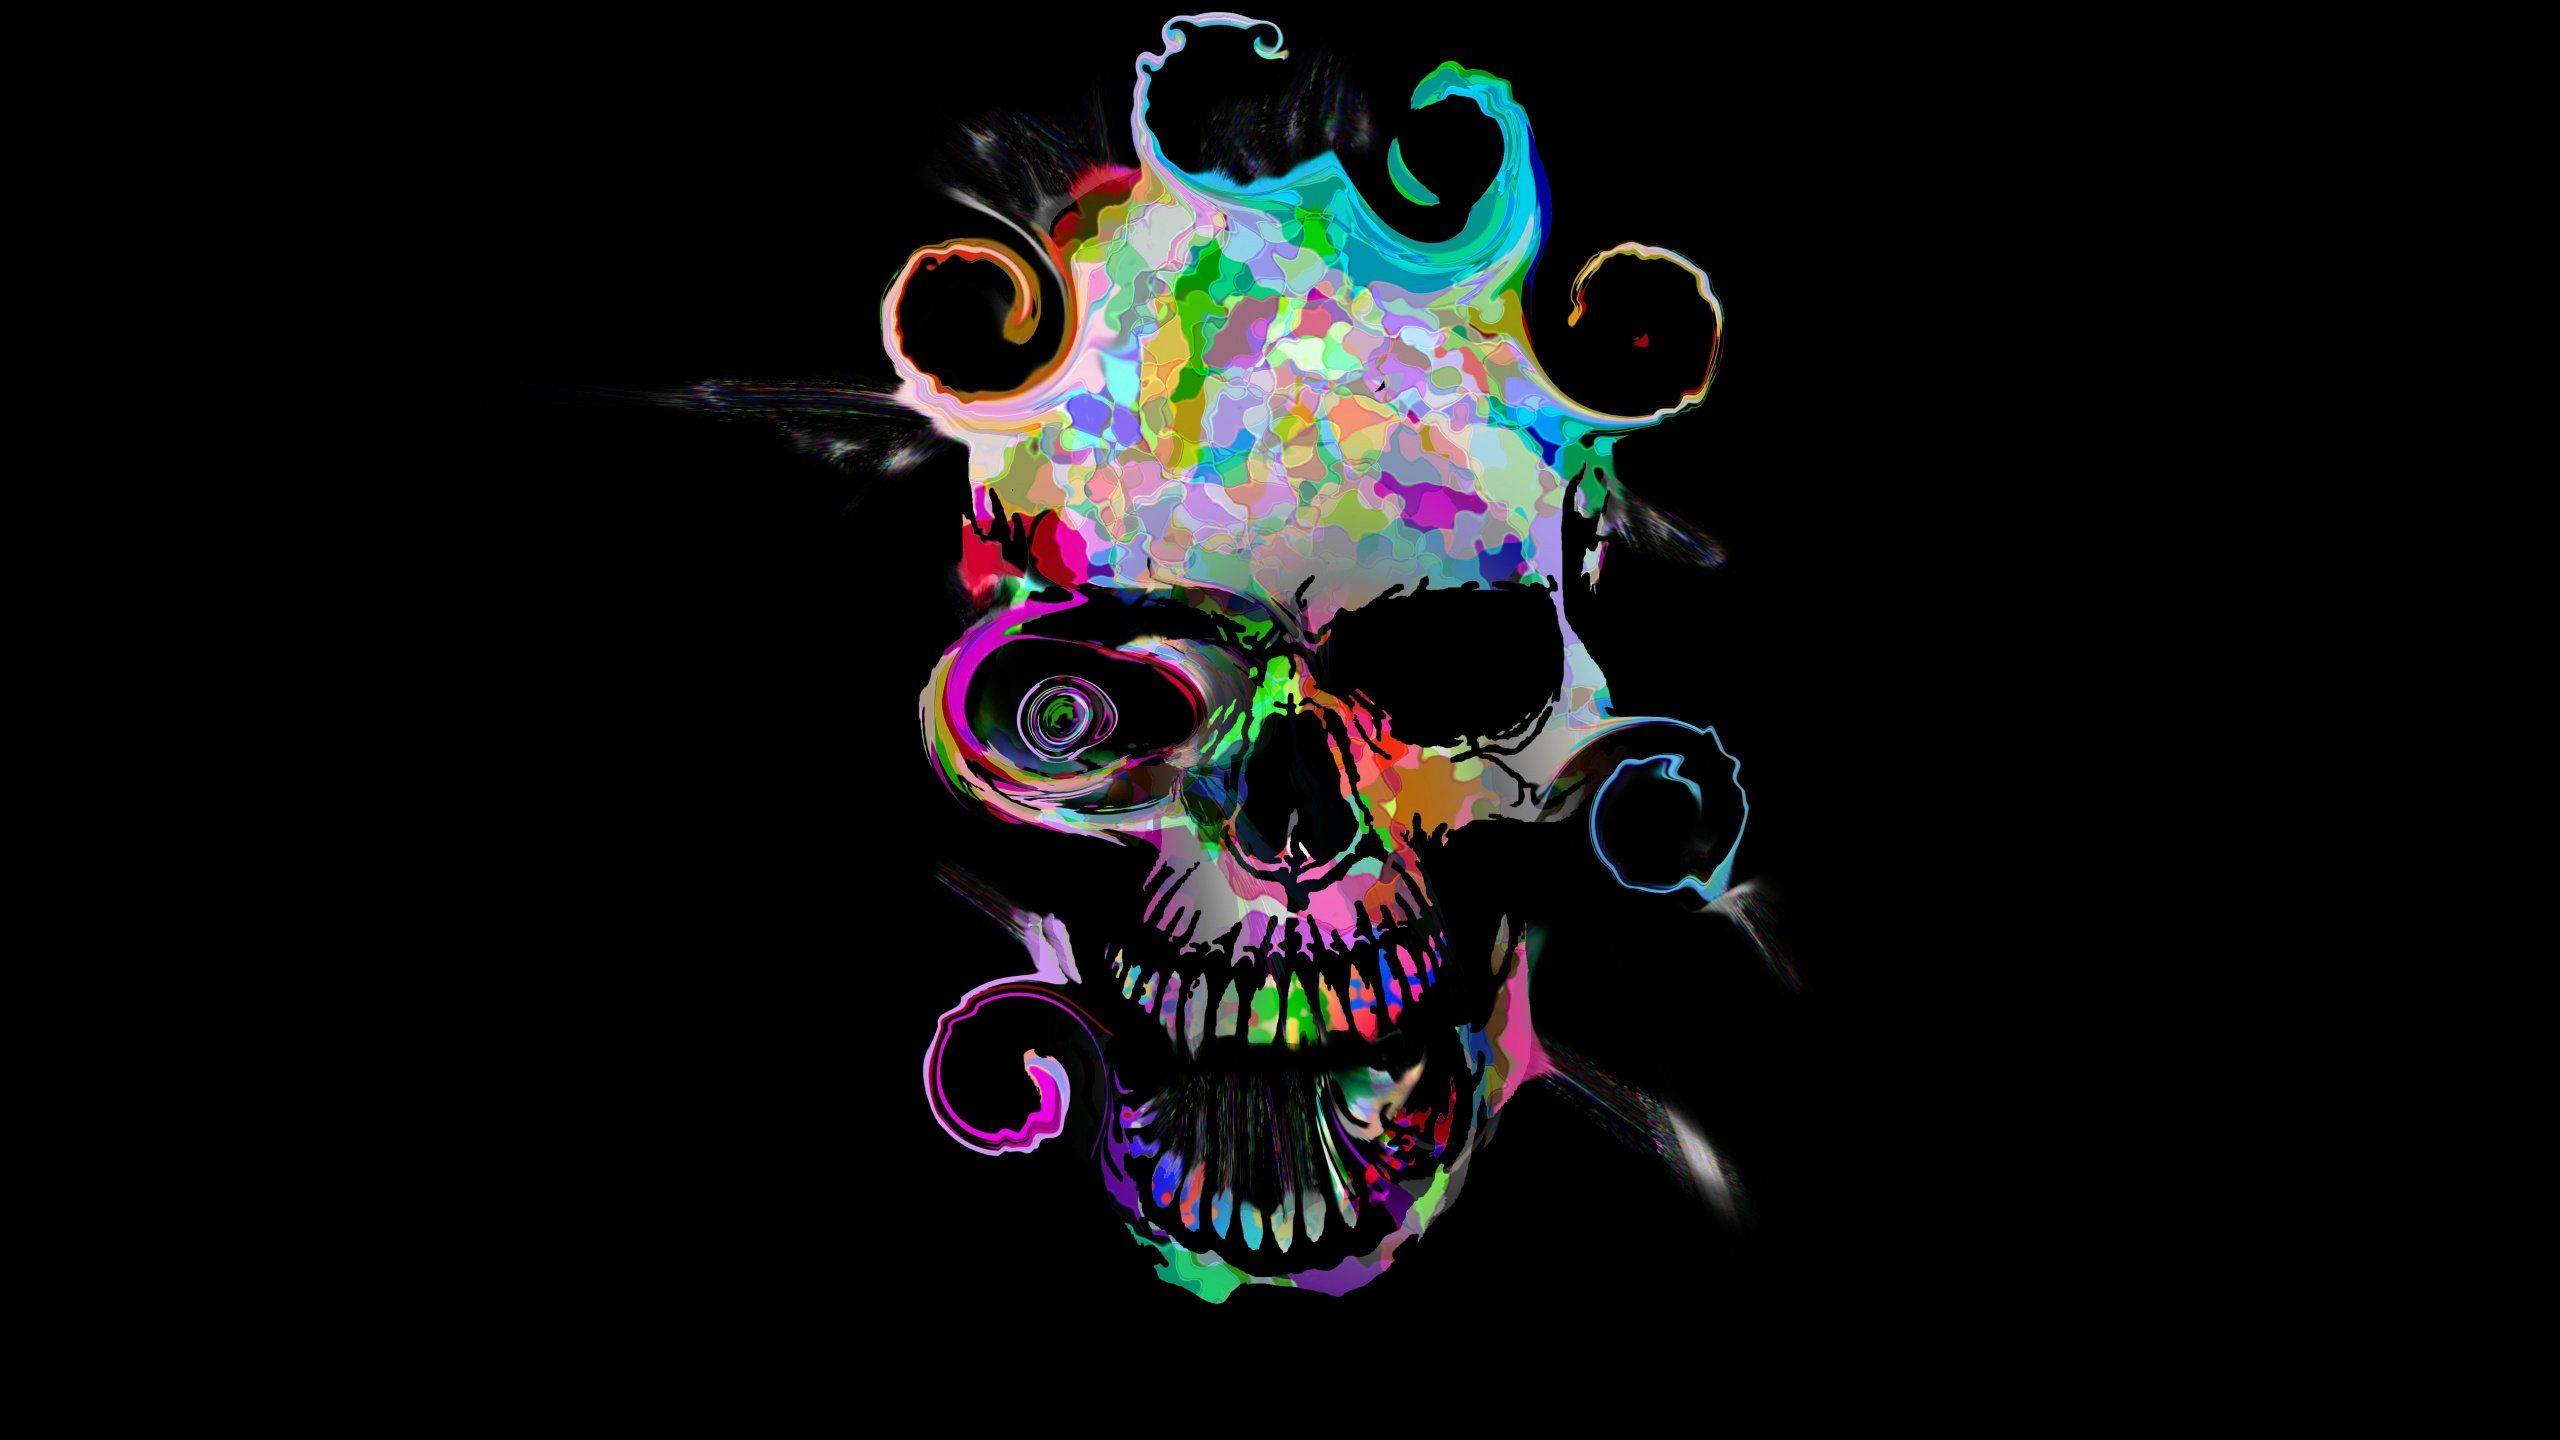 Purple And Black Skull Wallpapers Top Free Purple And Black Skull Backgrounds Wallpaperaccess